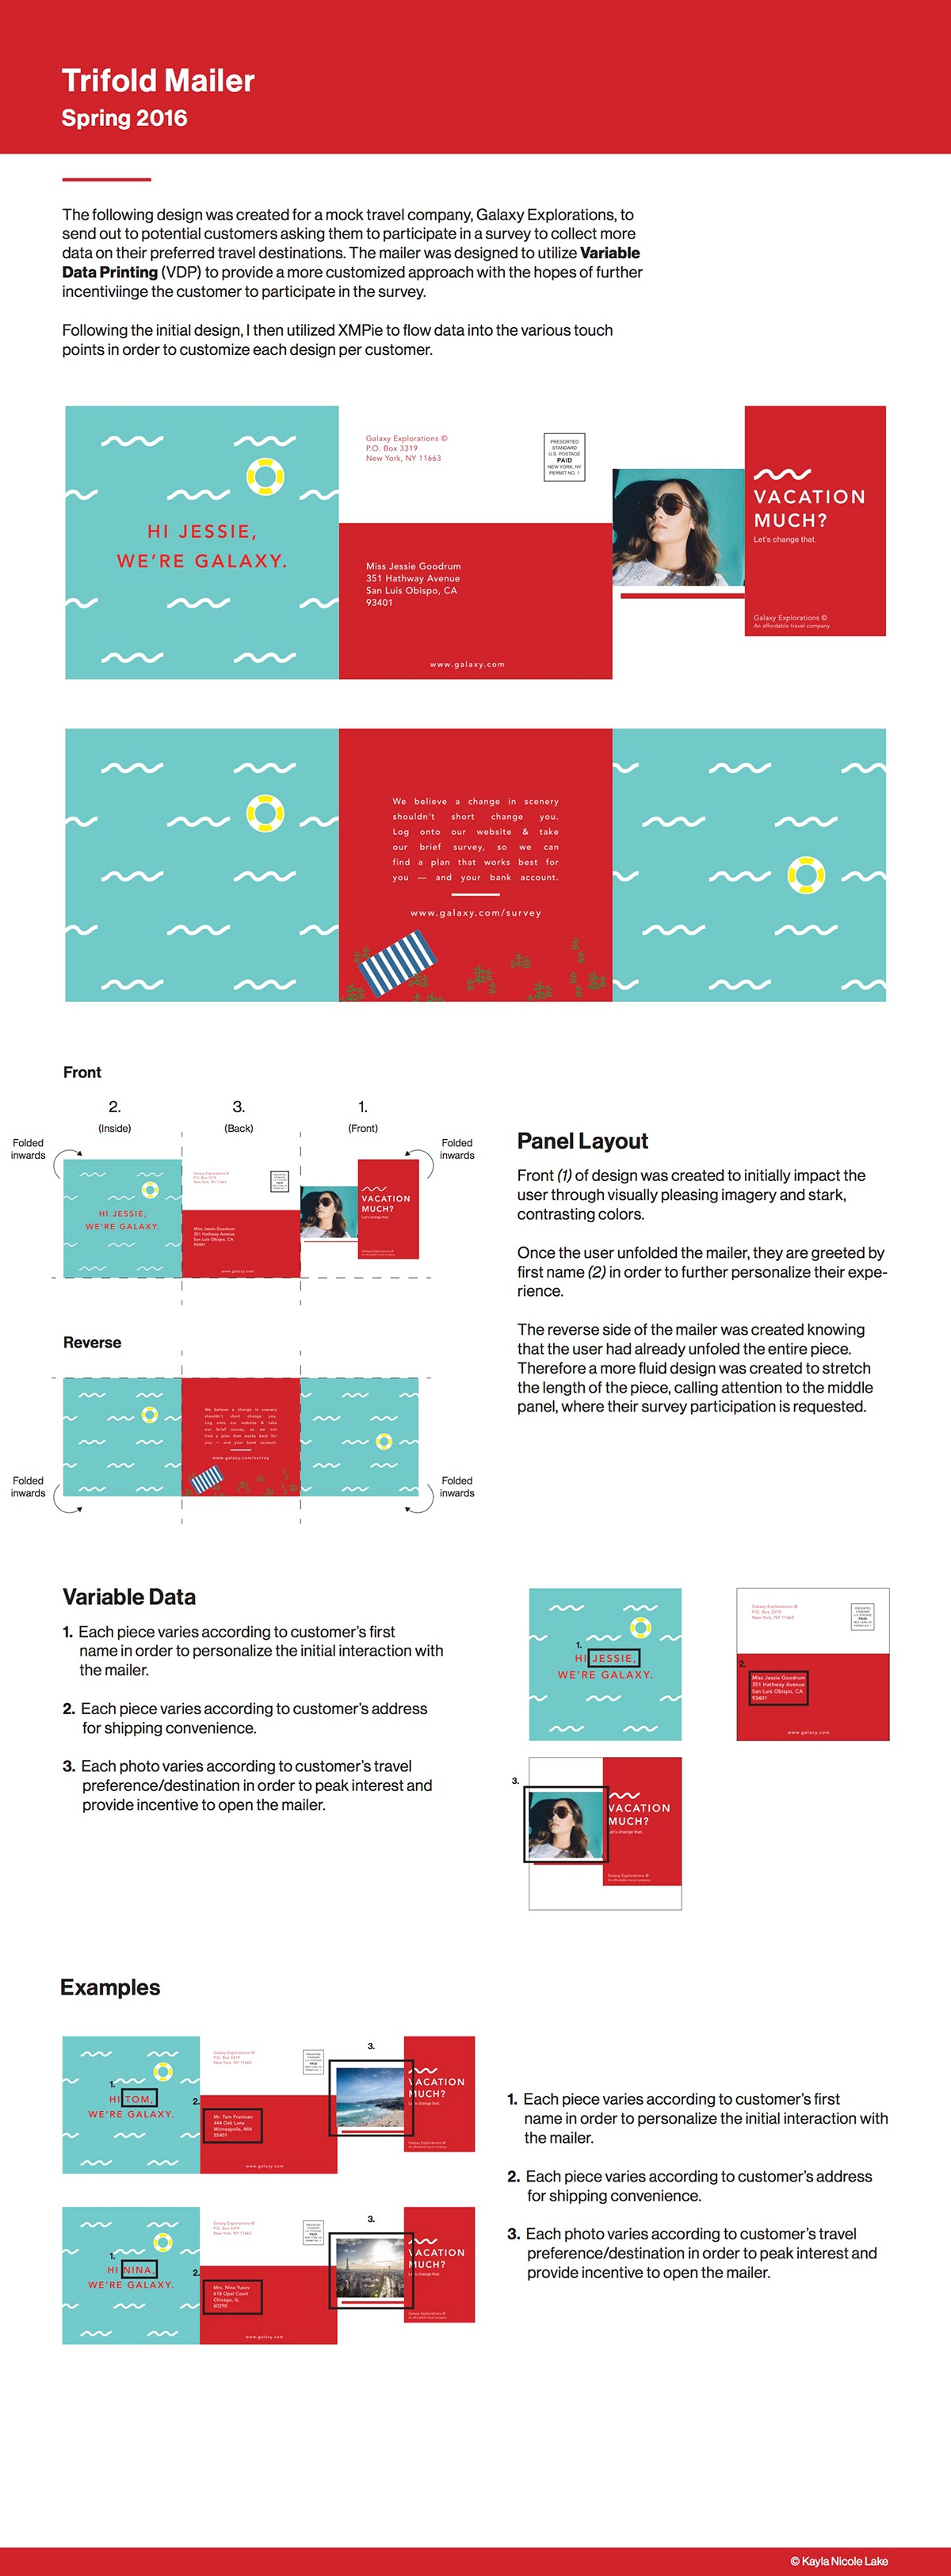 vdp trifold mailer on behance